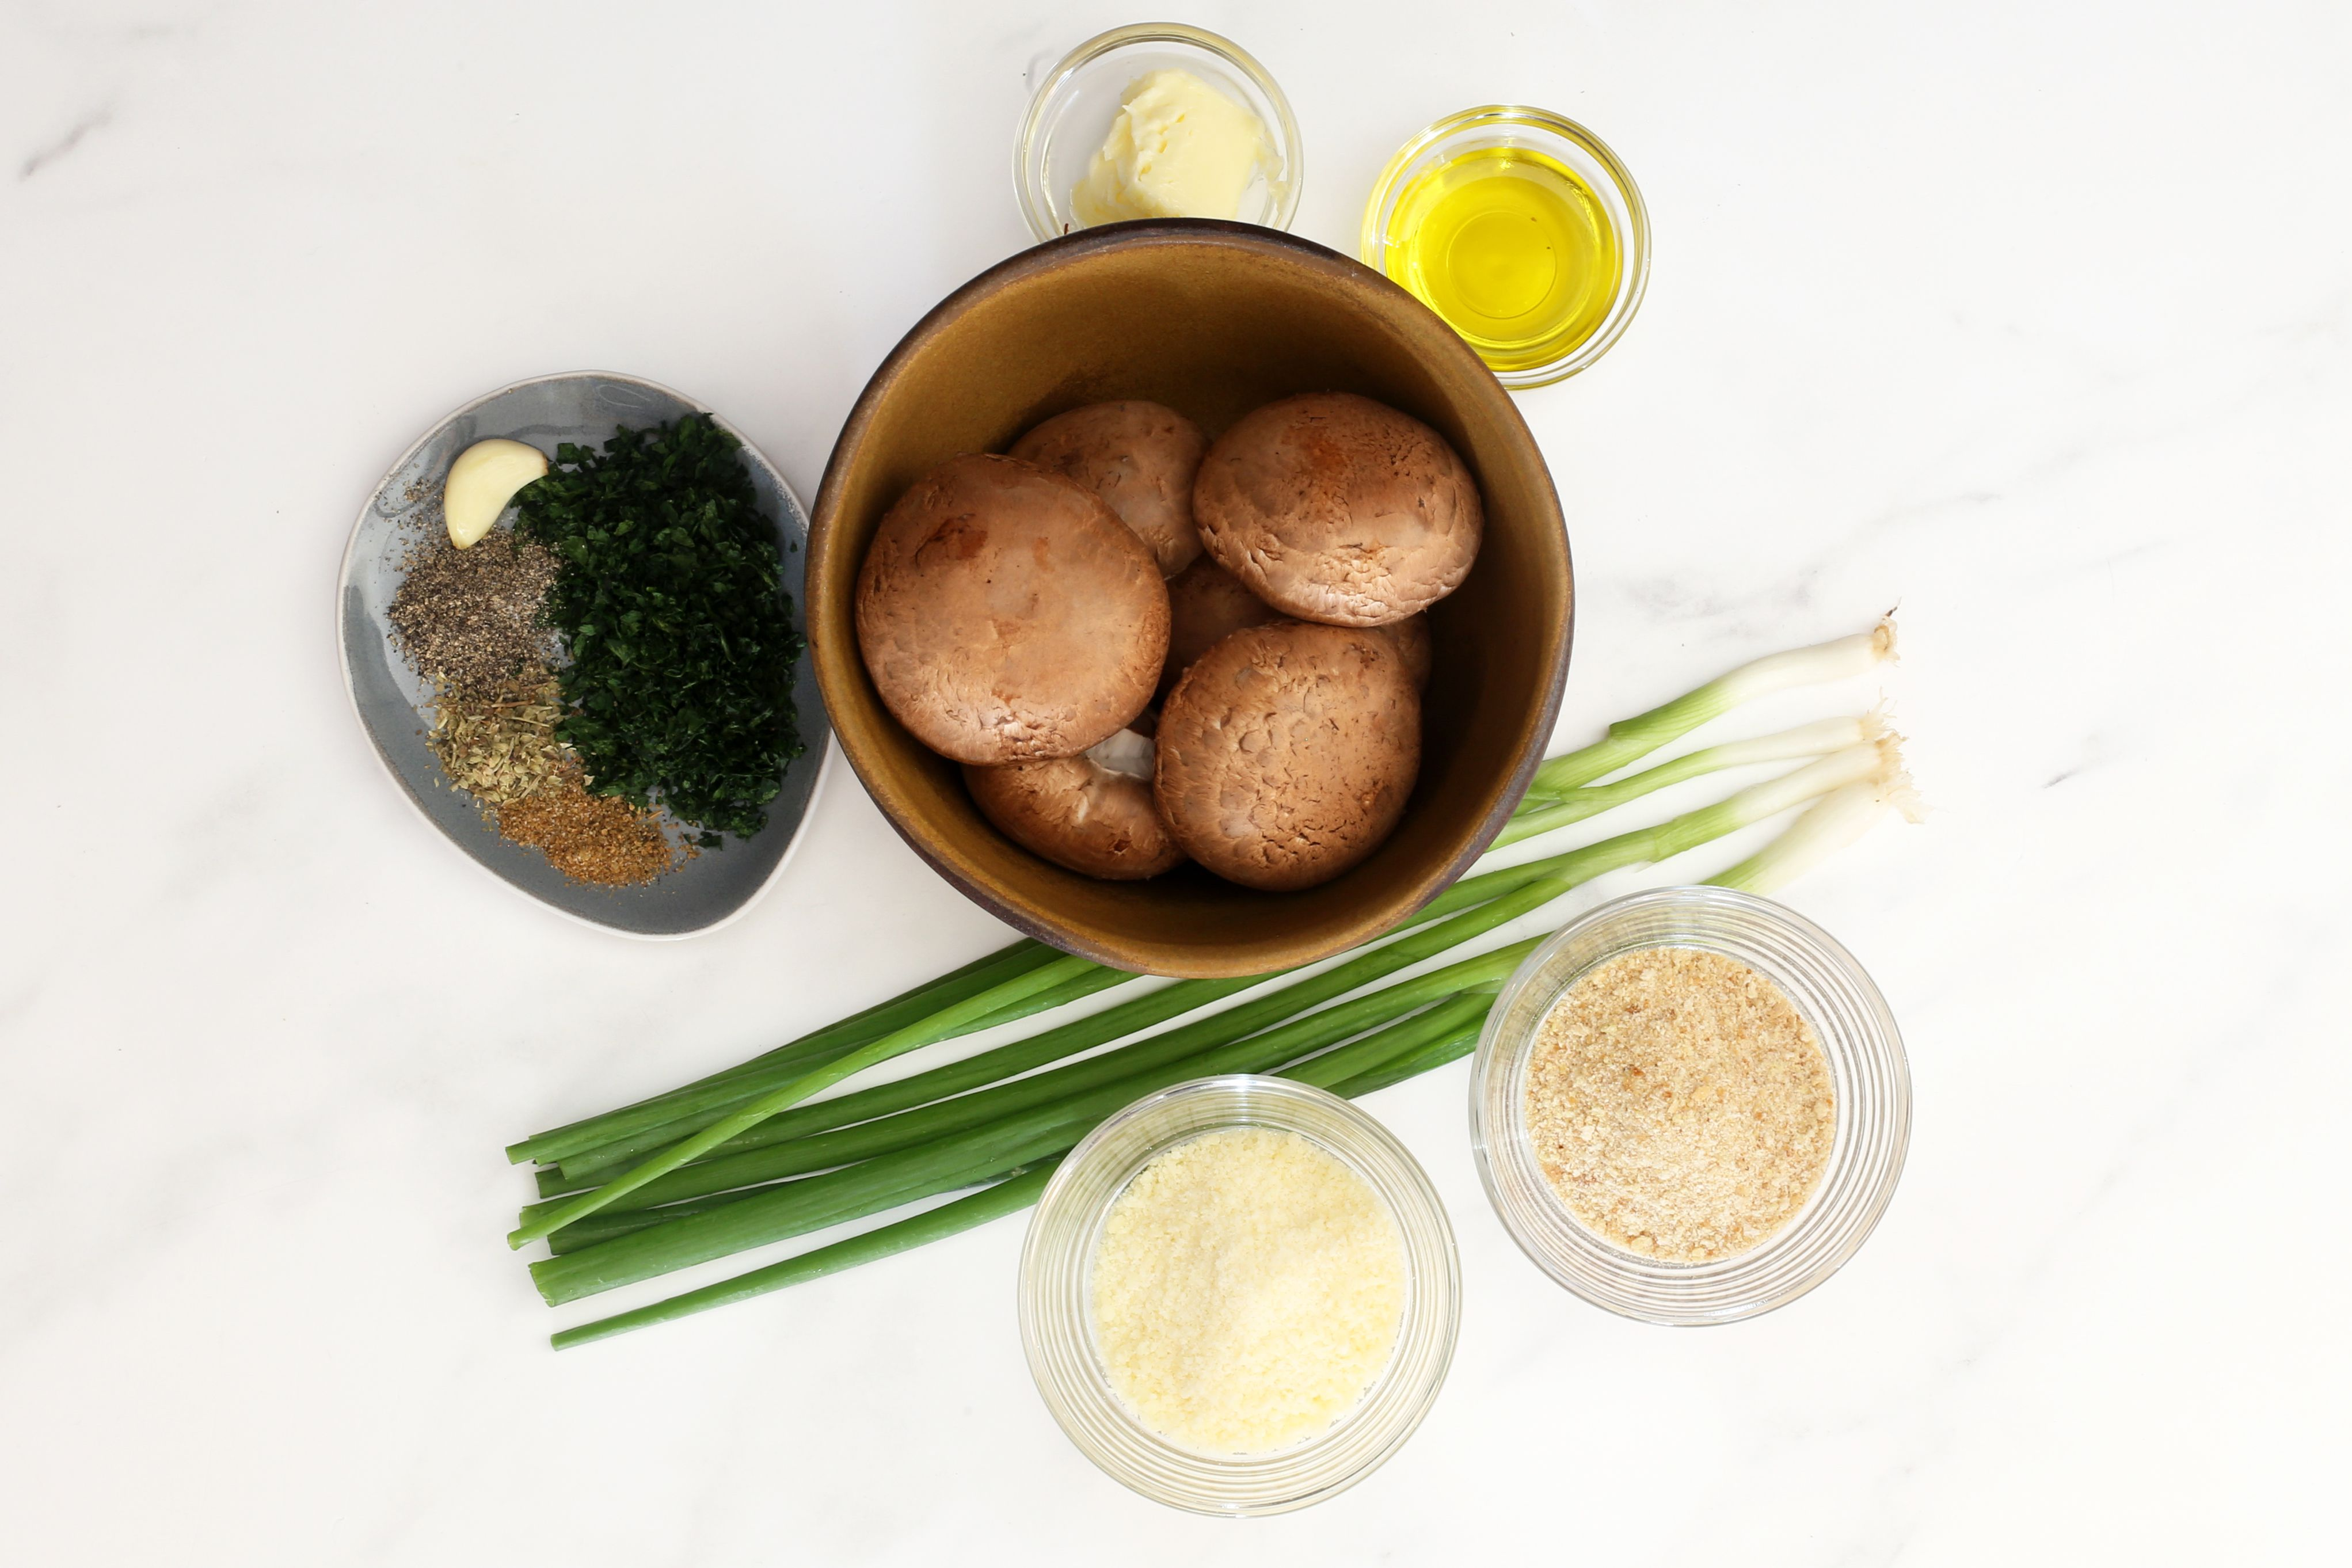 Gather the ingredients for stuffed mushrooms.